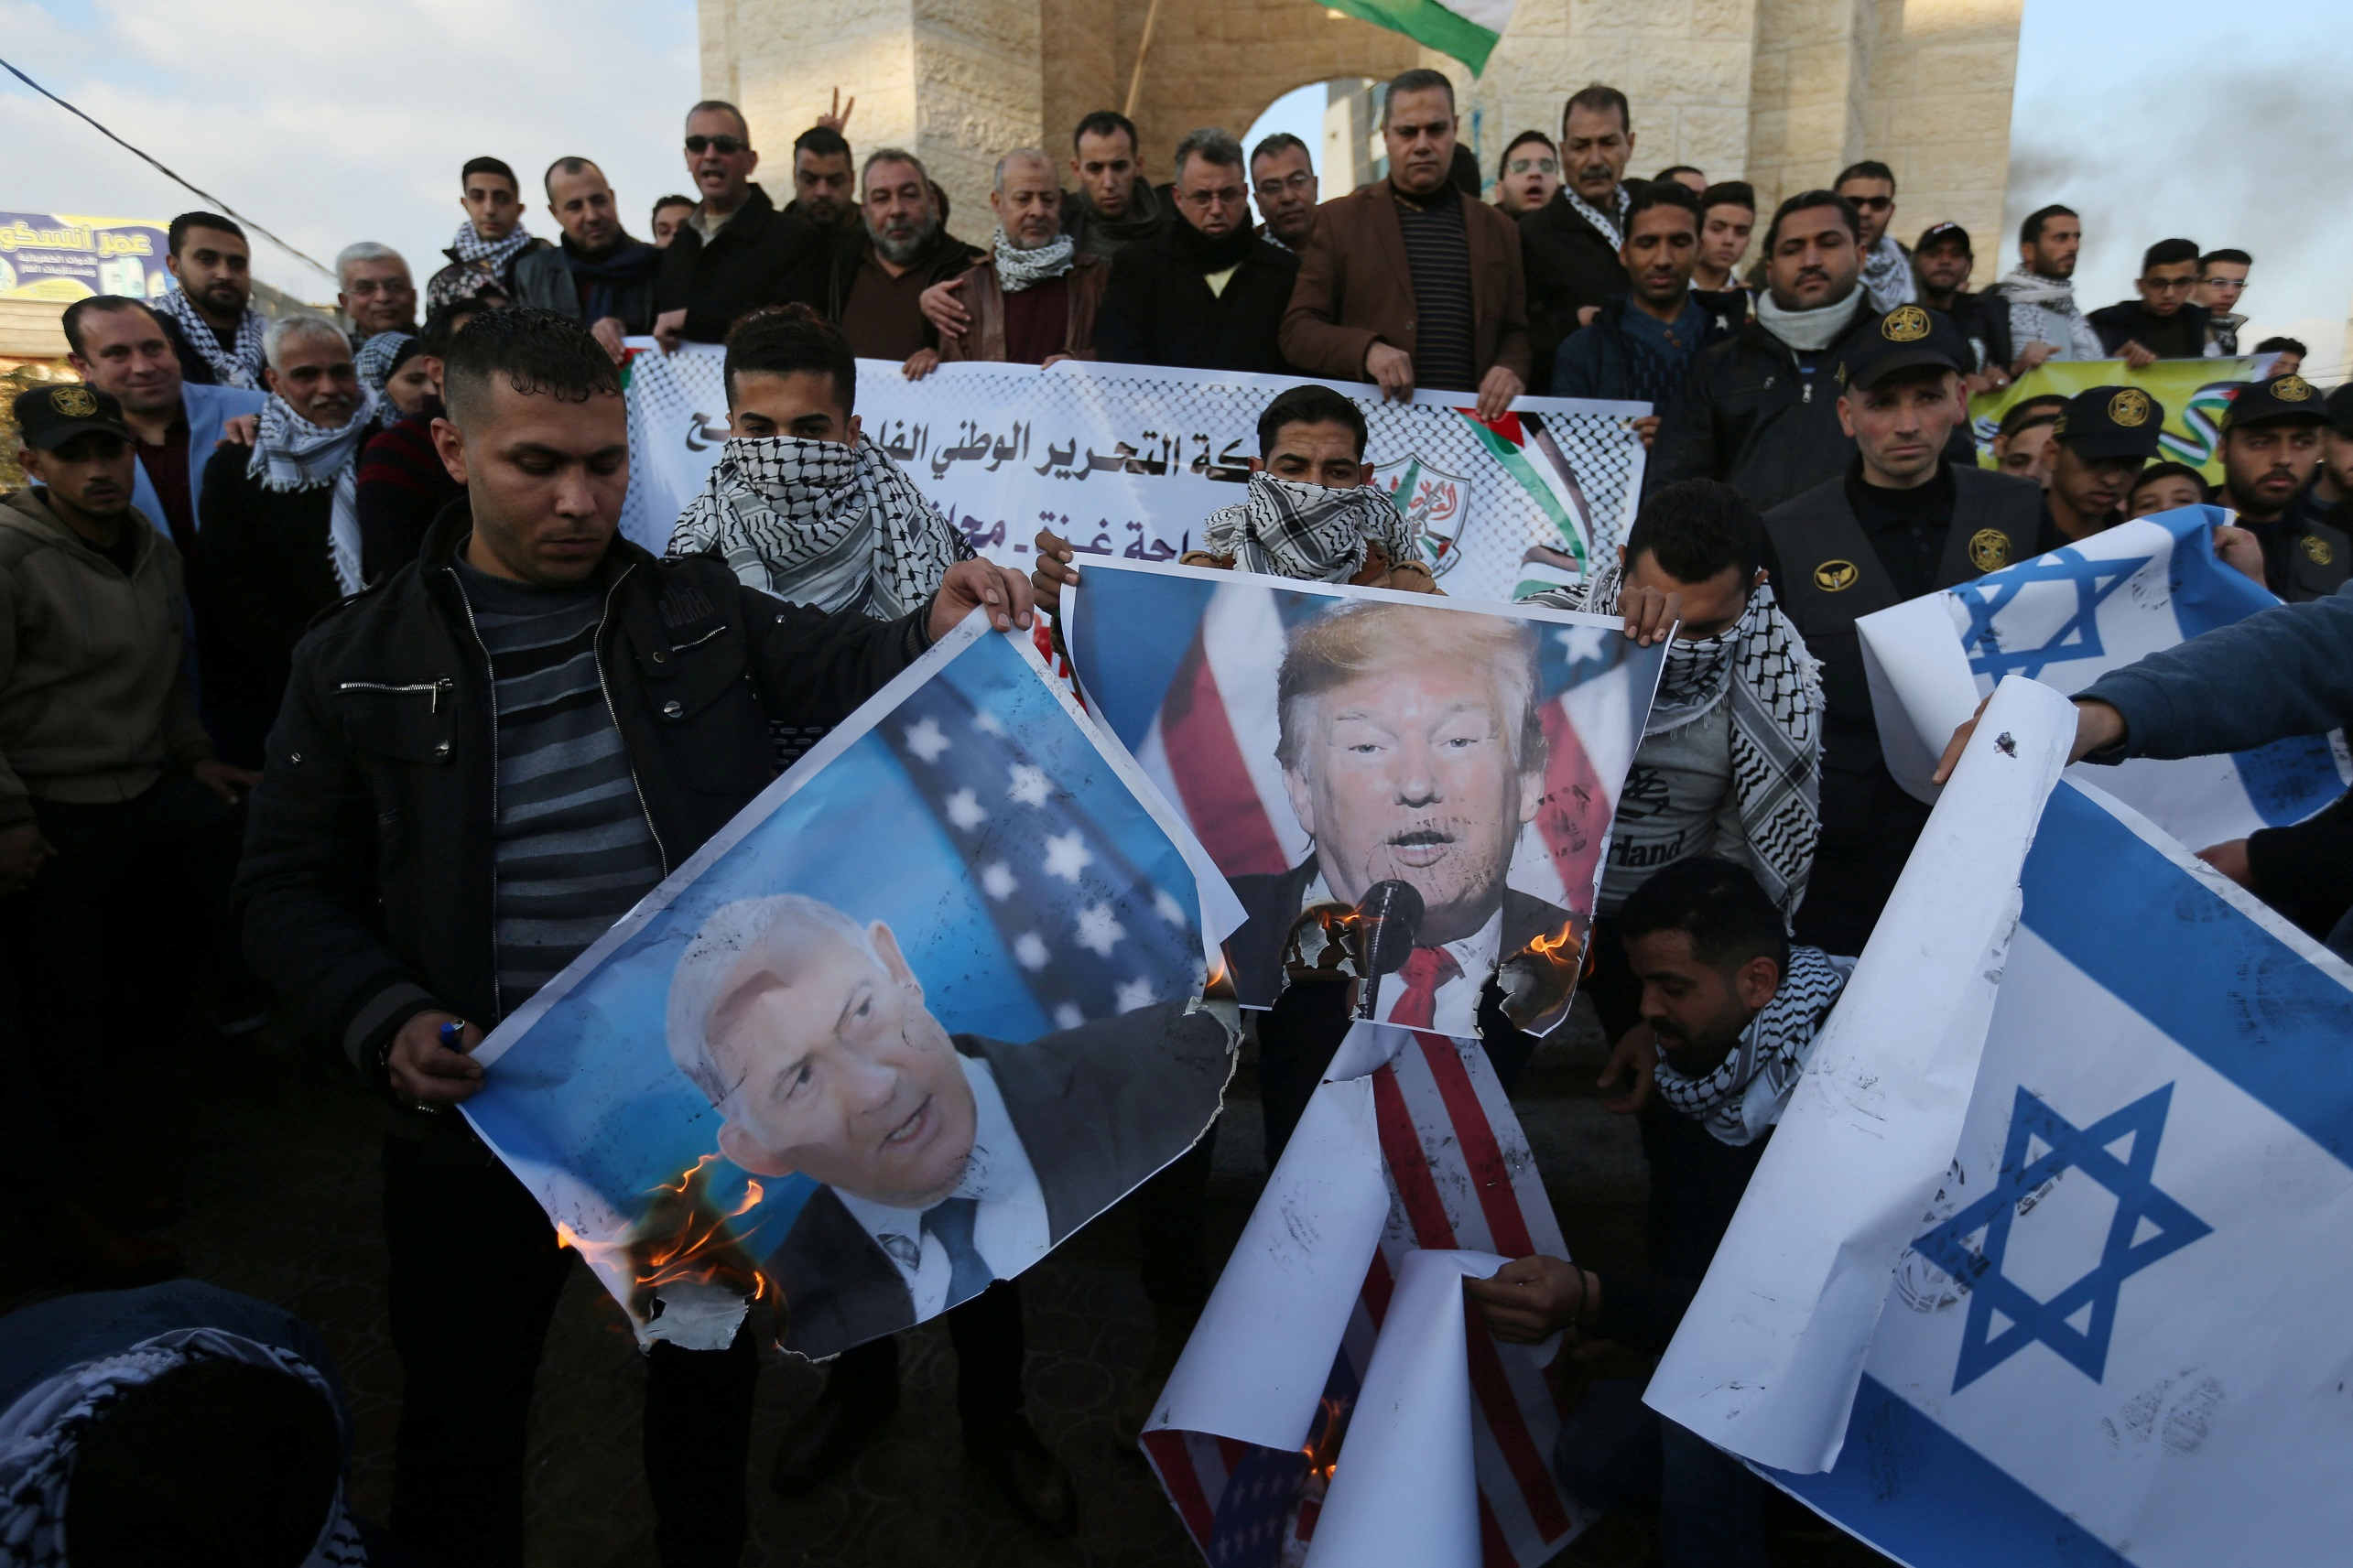 Palestinian demonstrators burn pictures depicting U.S. President Donald Trump and Israeli Prime Minister Benjamin Netanyahu, and repsentations of U.S and Israeli flags during a protest against the U.S. President Donald Trump's Middle East peace plan, in the southern Gaza Strip January 29, 2020. REUTERS/Ibraheem Abu Mustafa